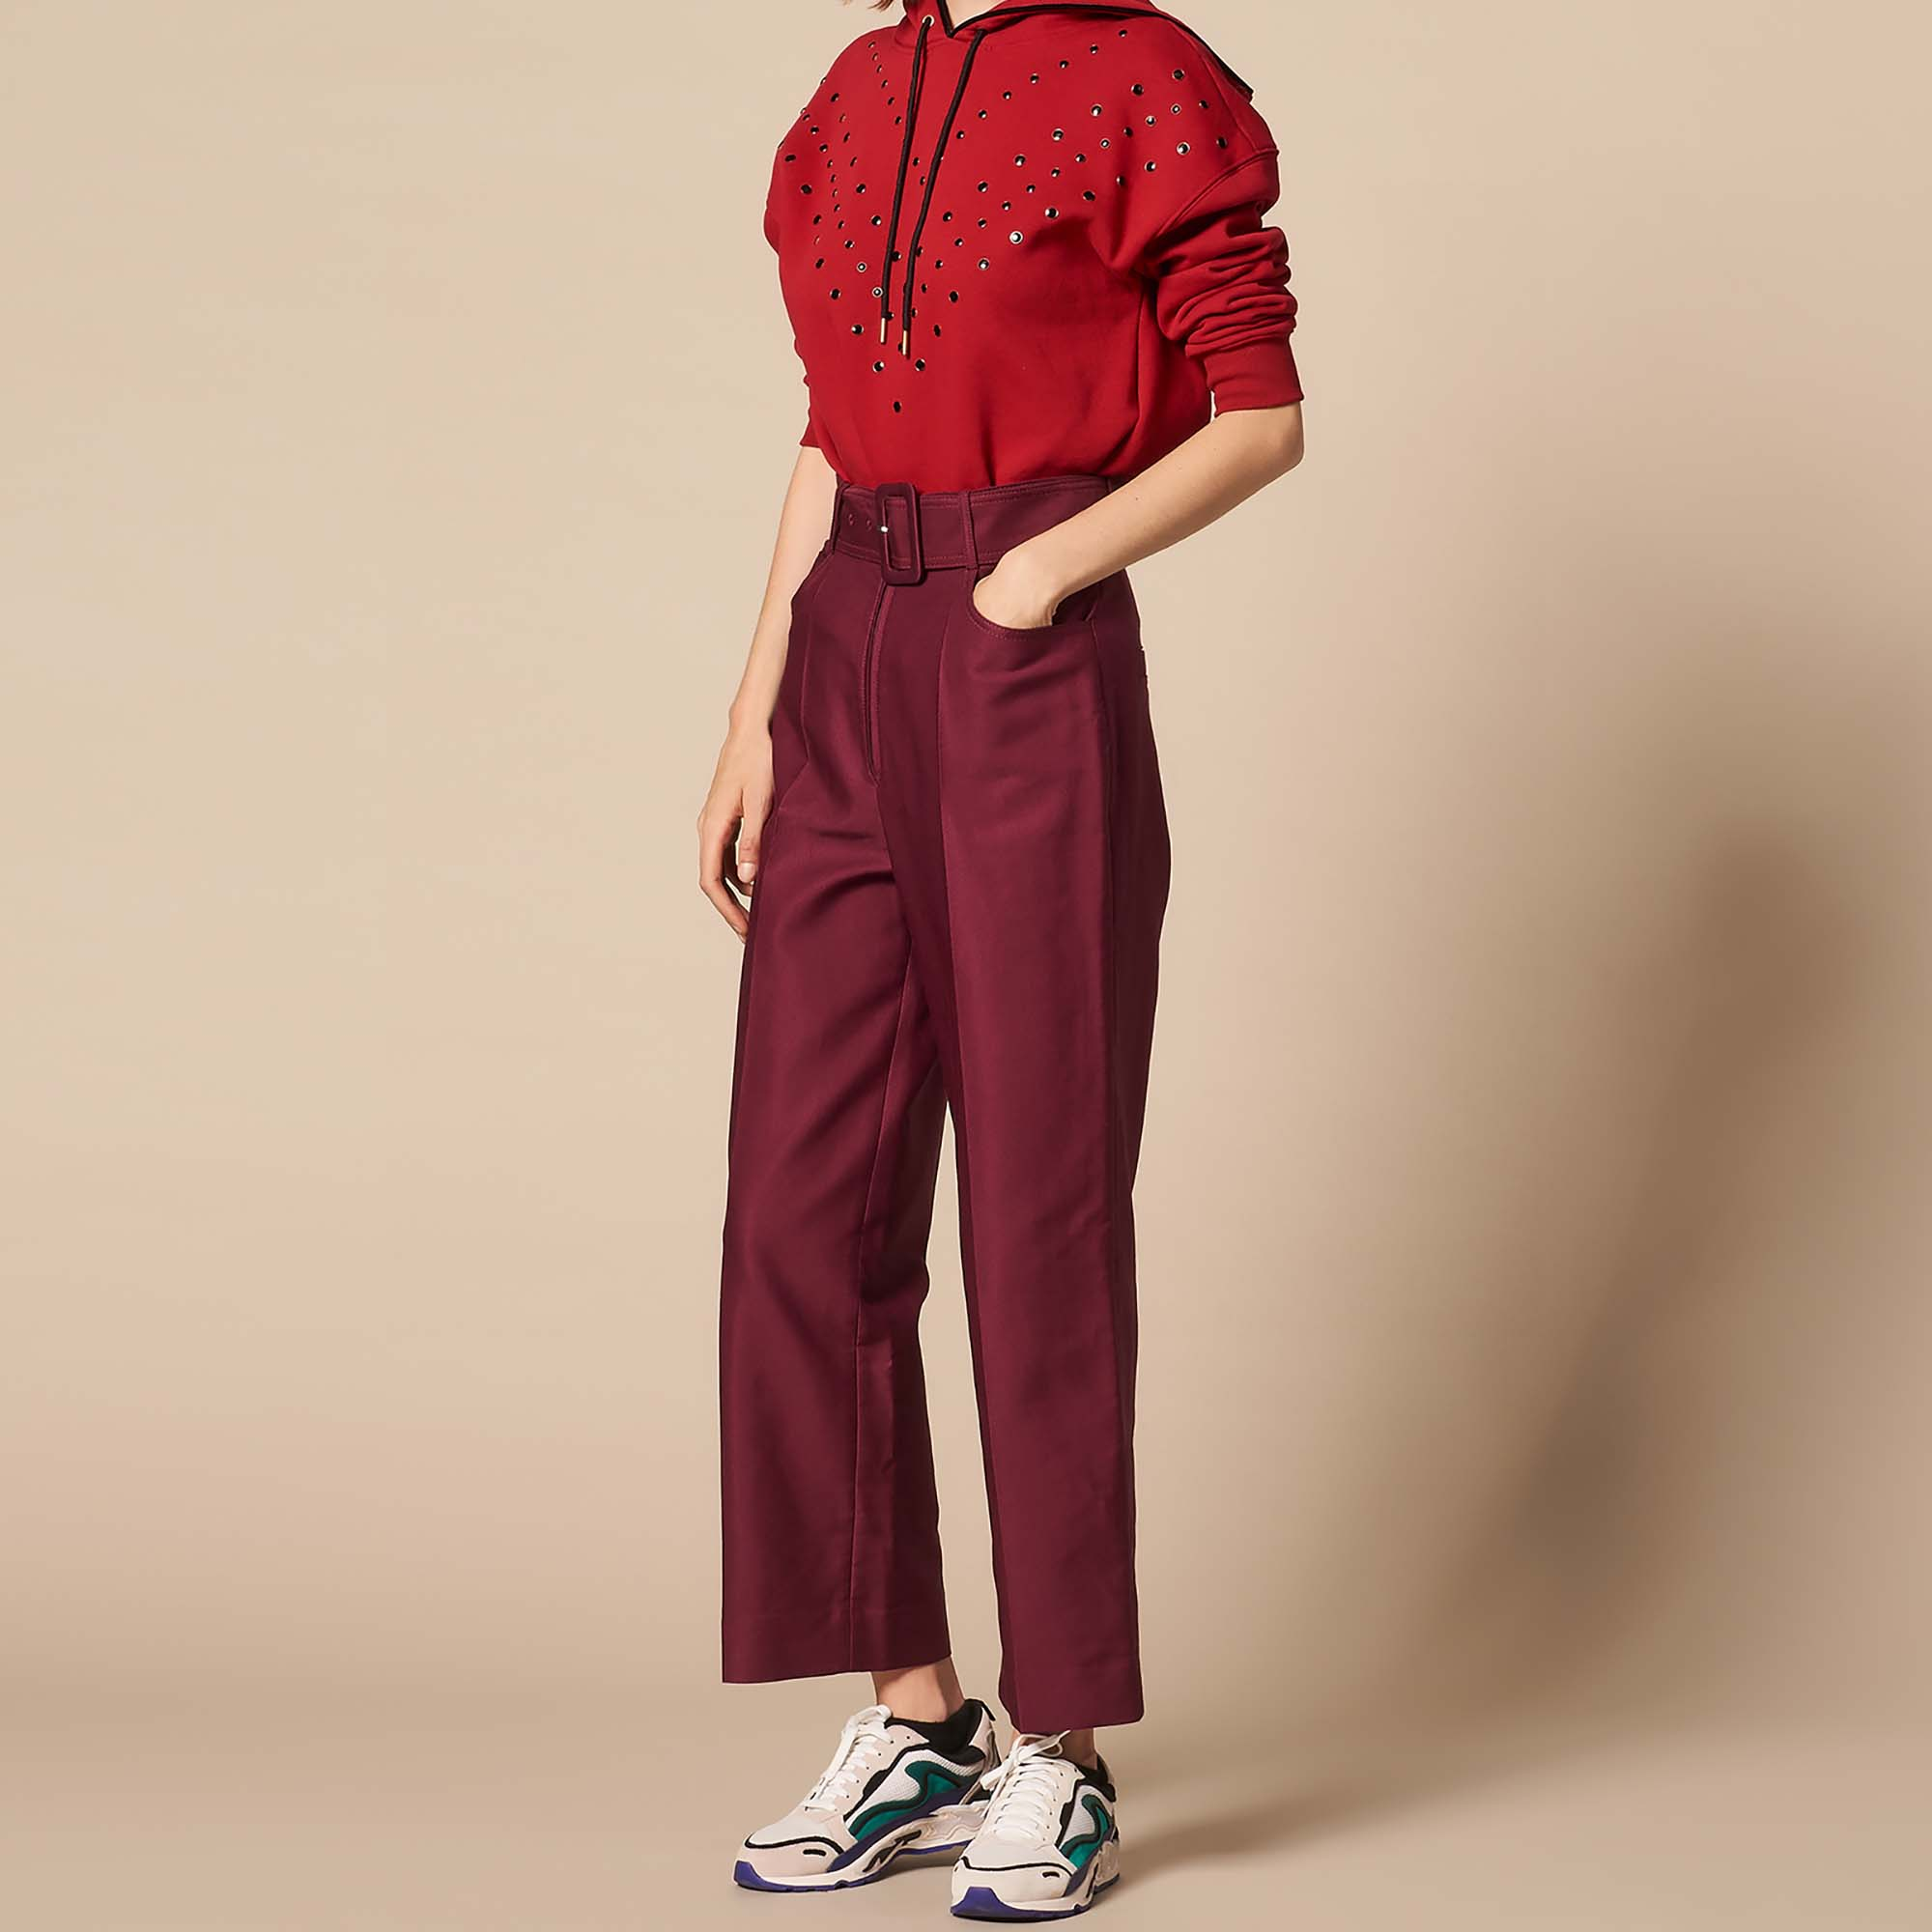 Belted High Waisted Trousers Pants Shorts Sandro Paris